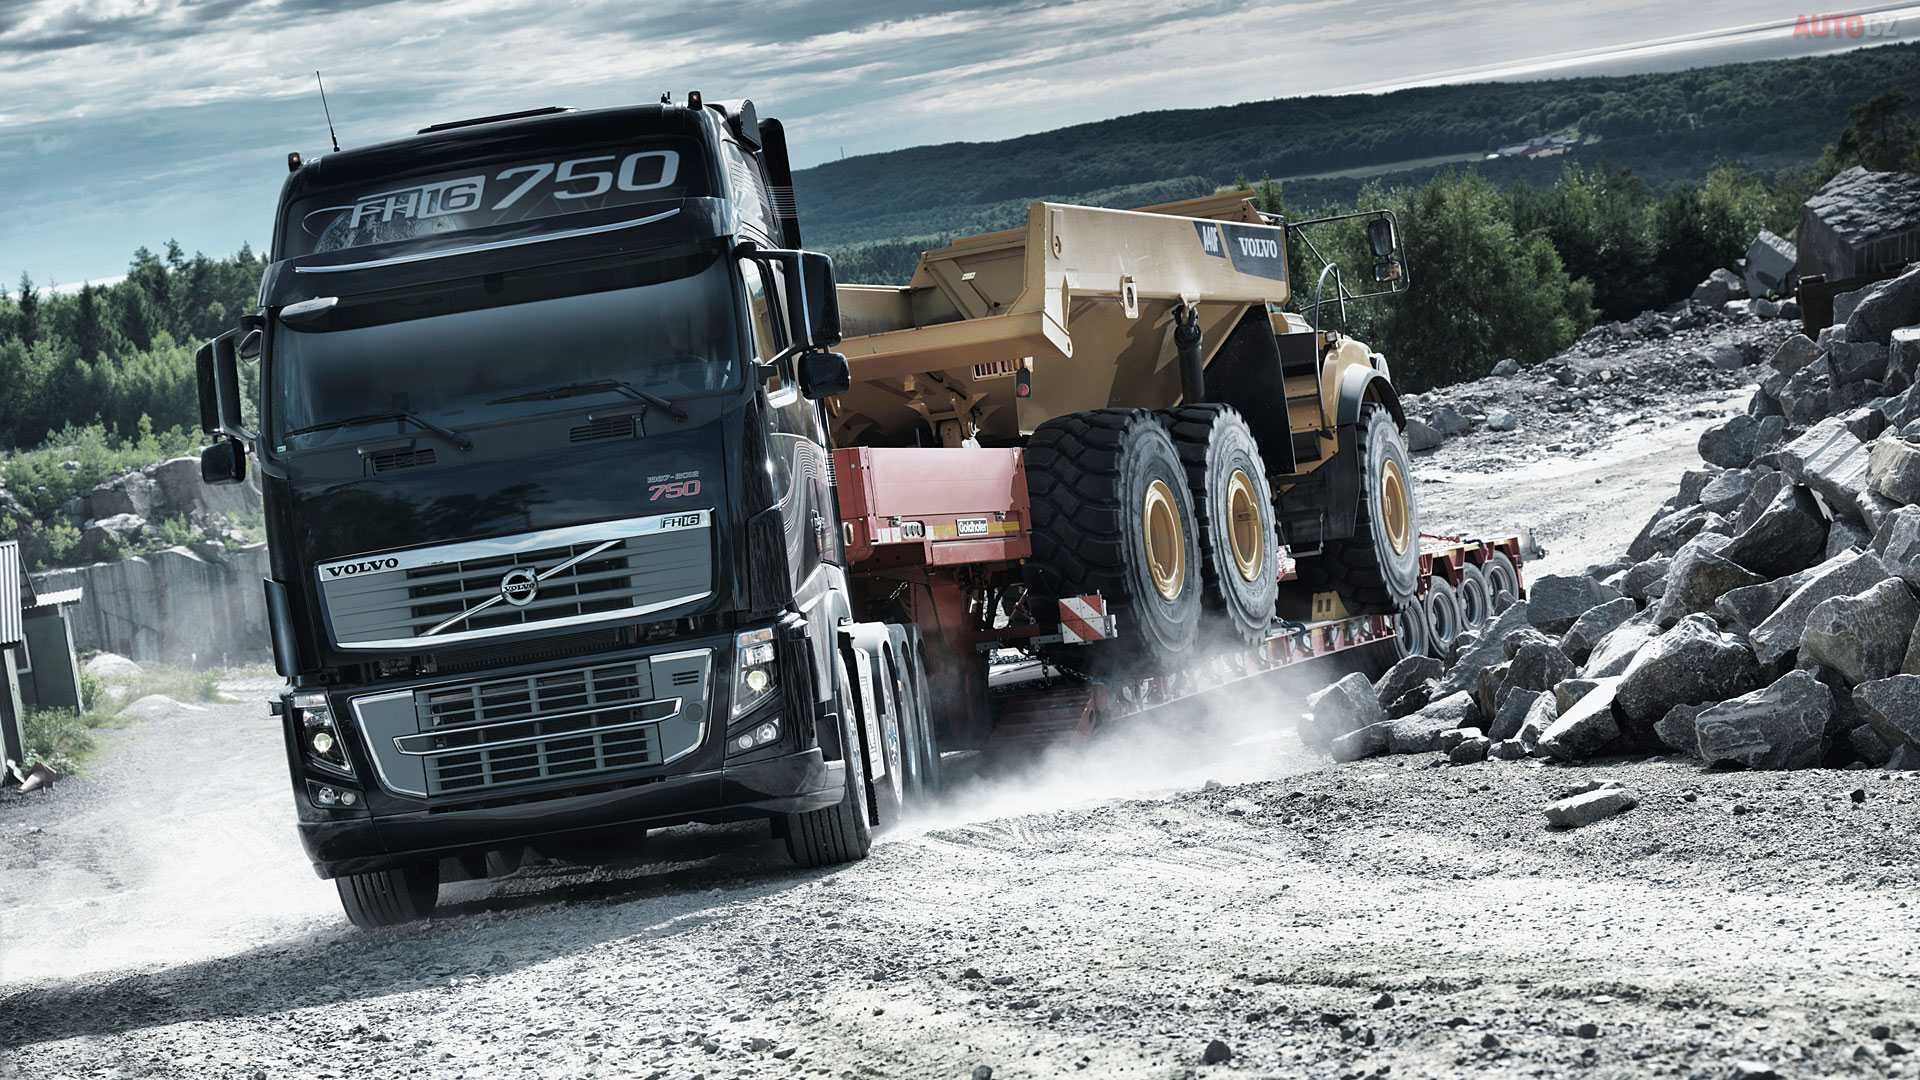 Volvo Truck Wallpaper HD Resolution UjG